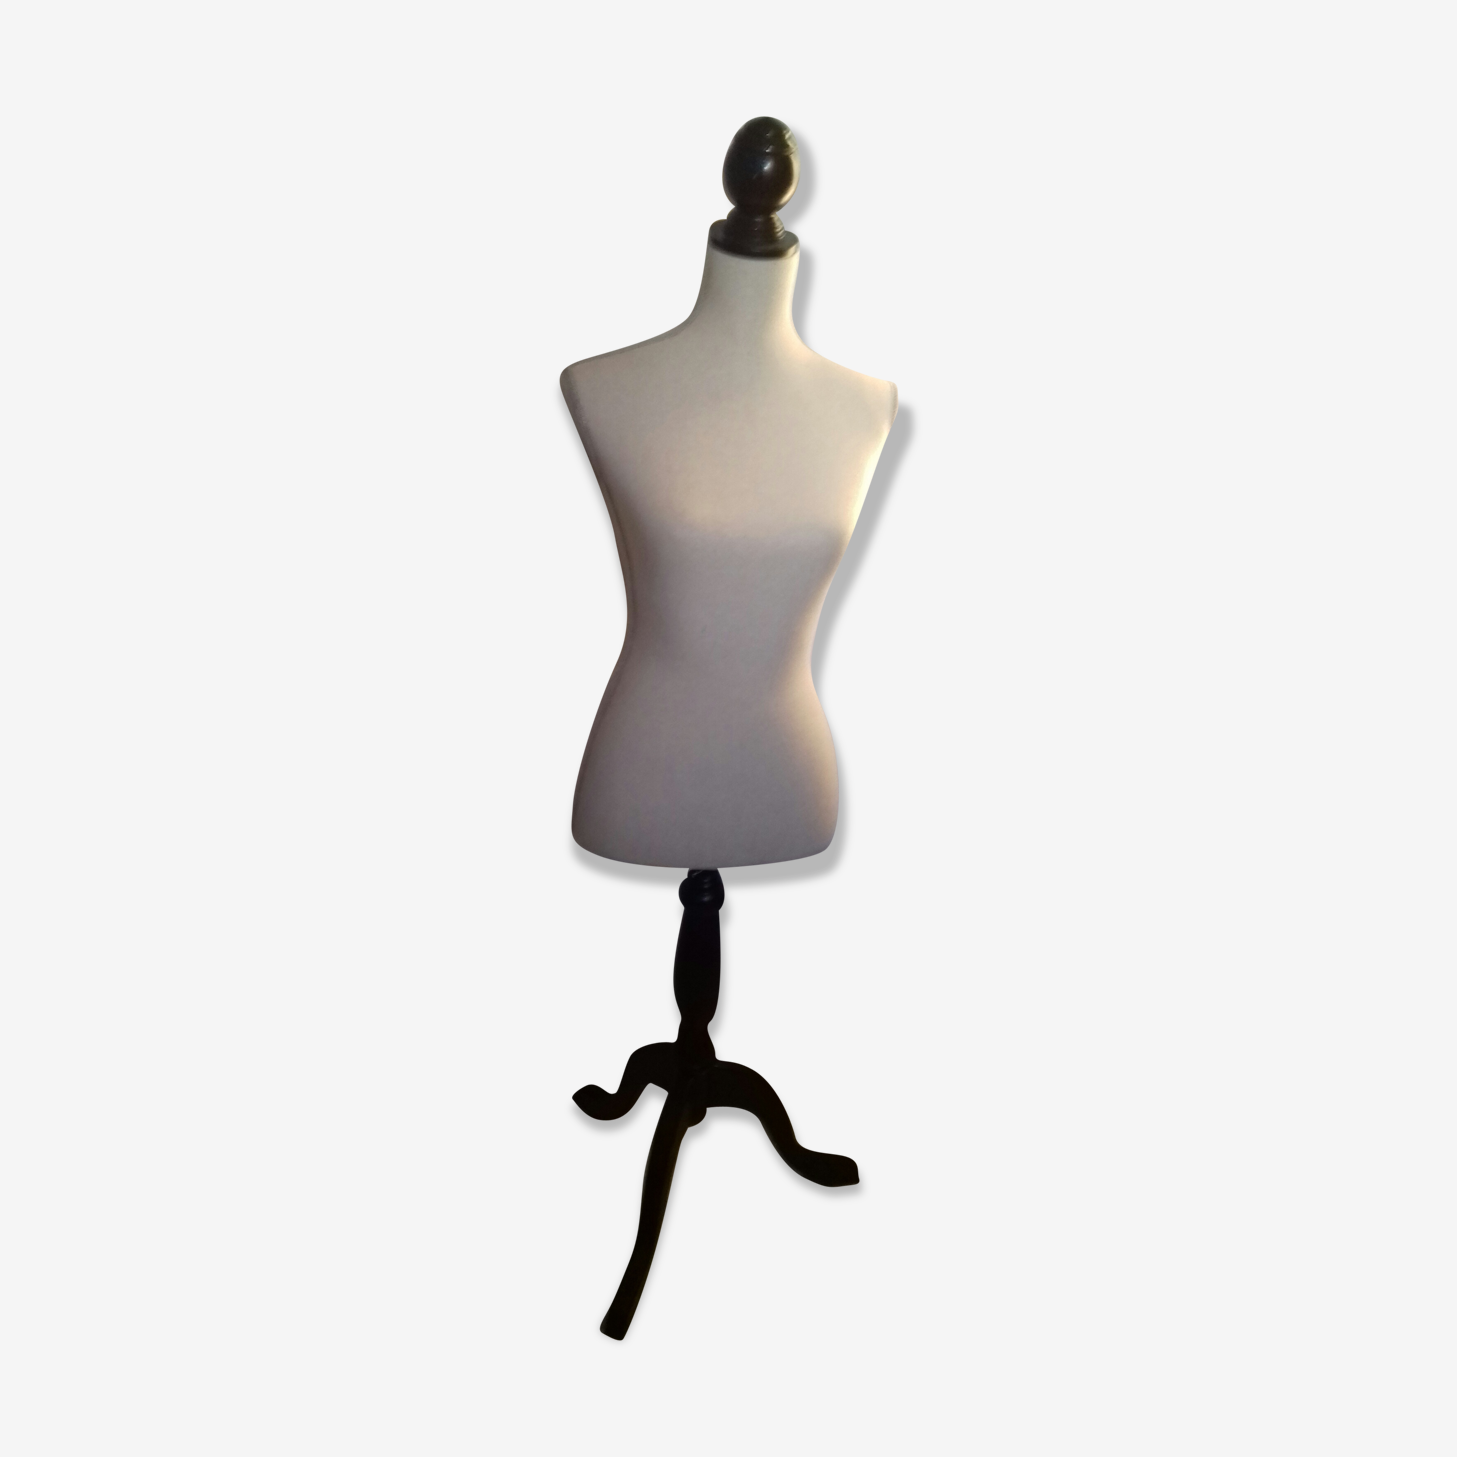 Sewing Mannequin bust